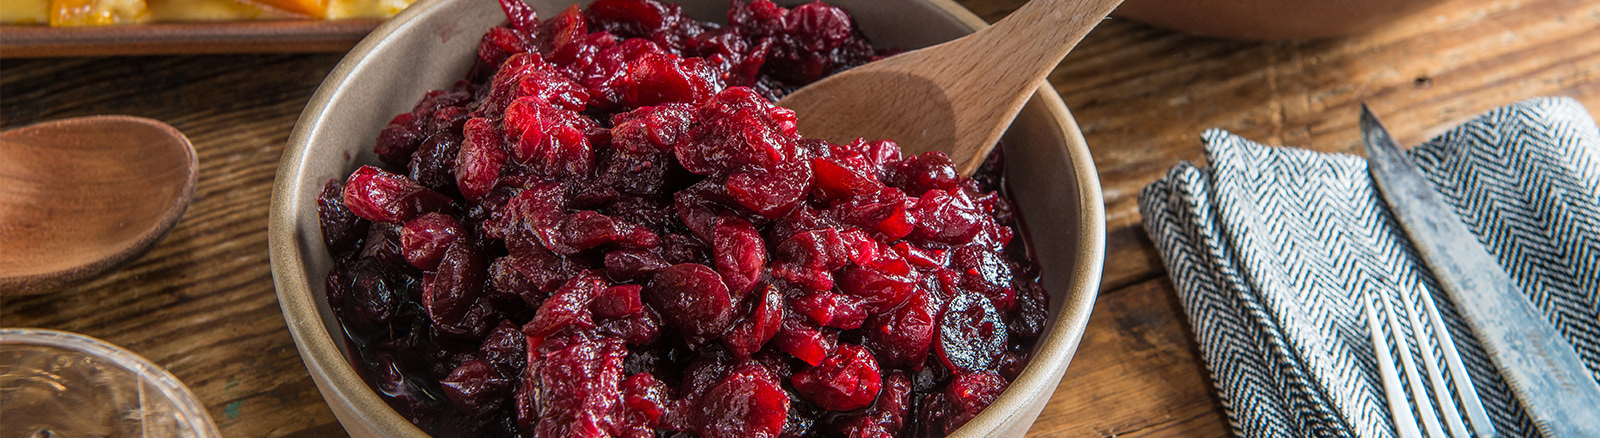 Roasted Cranberry Sauce with Red Wine & Cinnamon